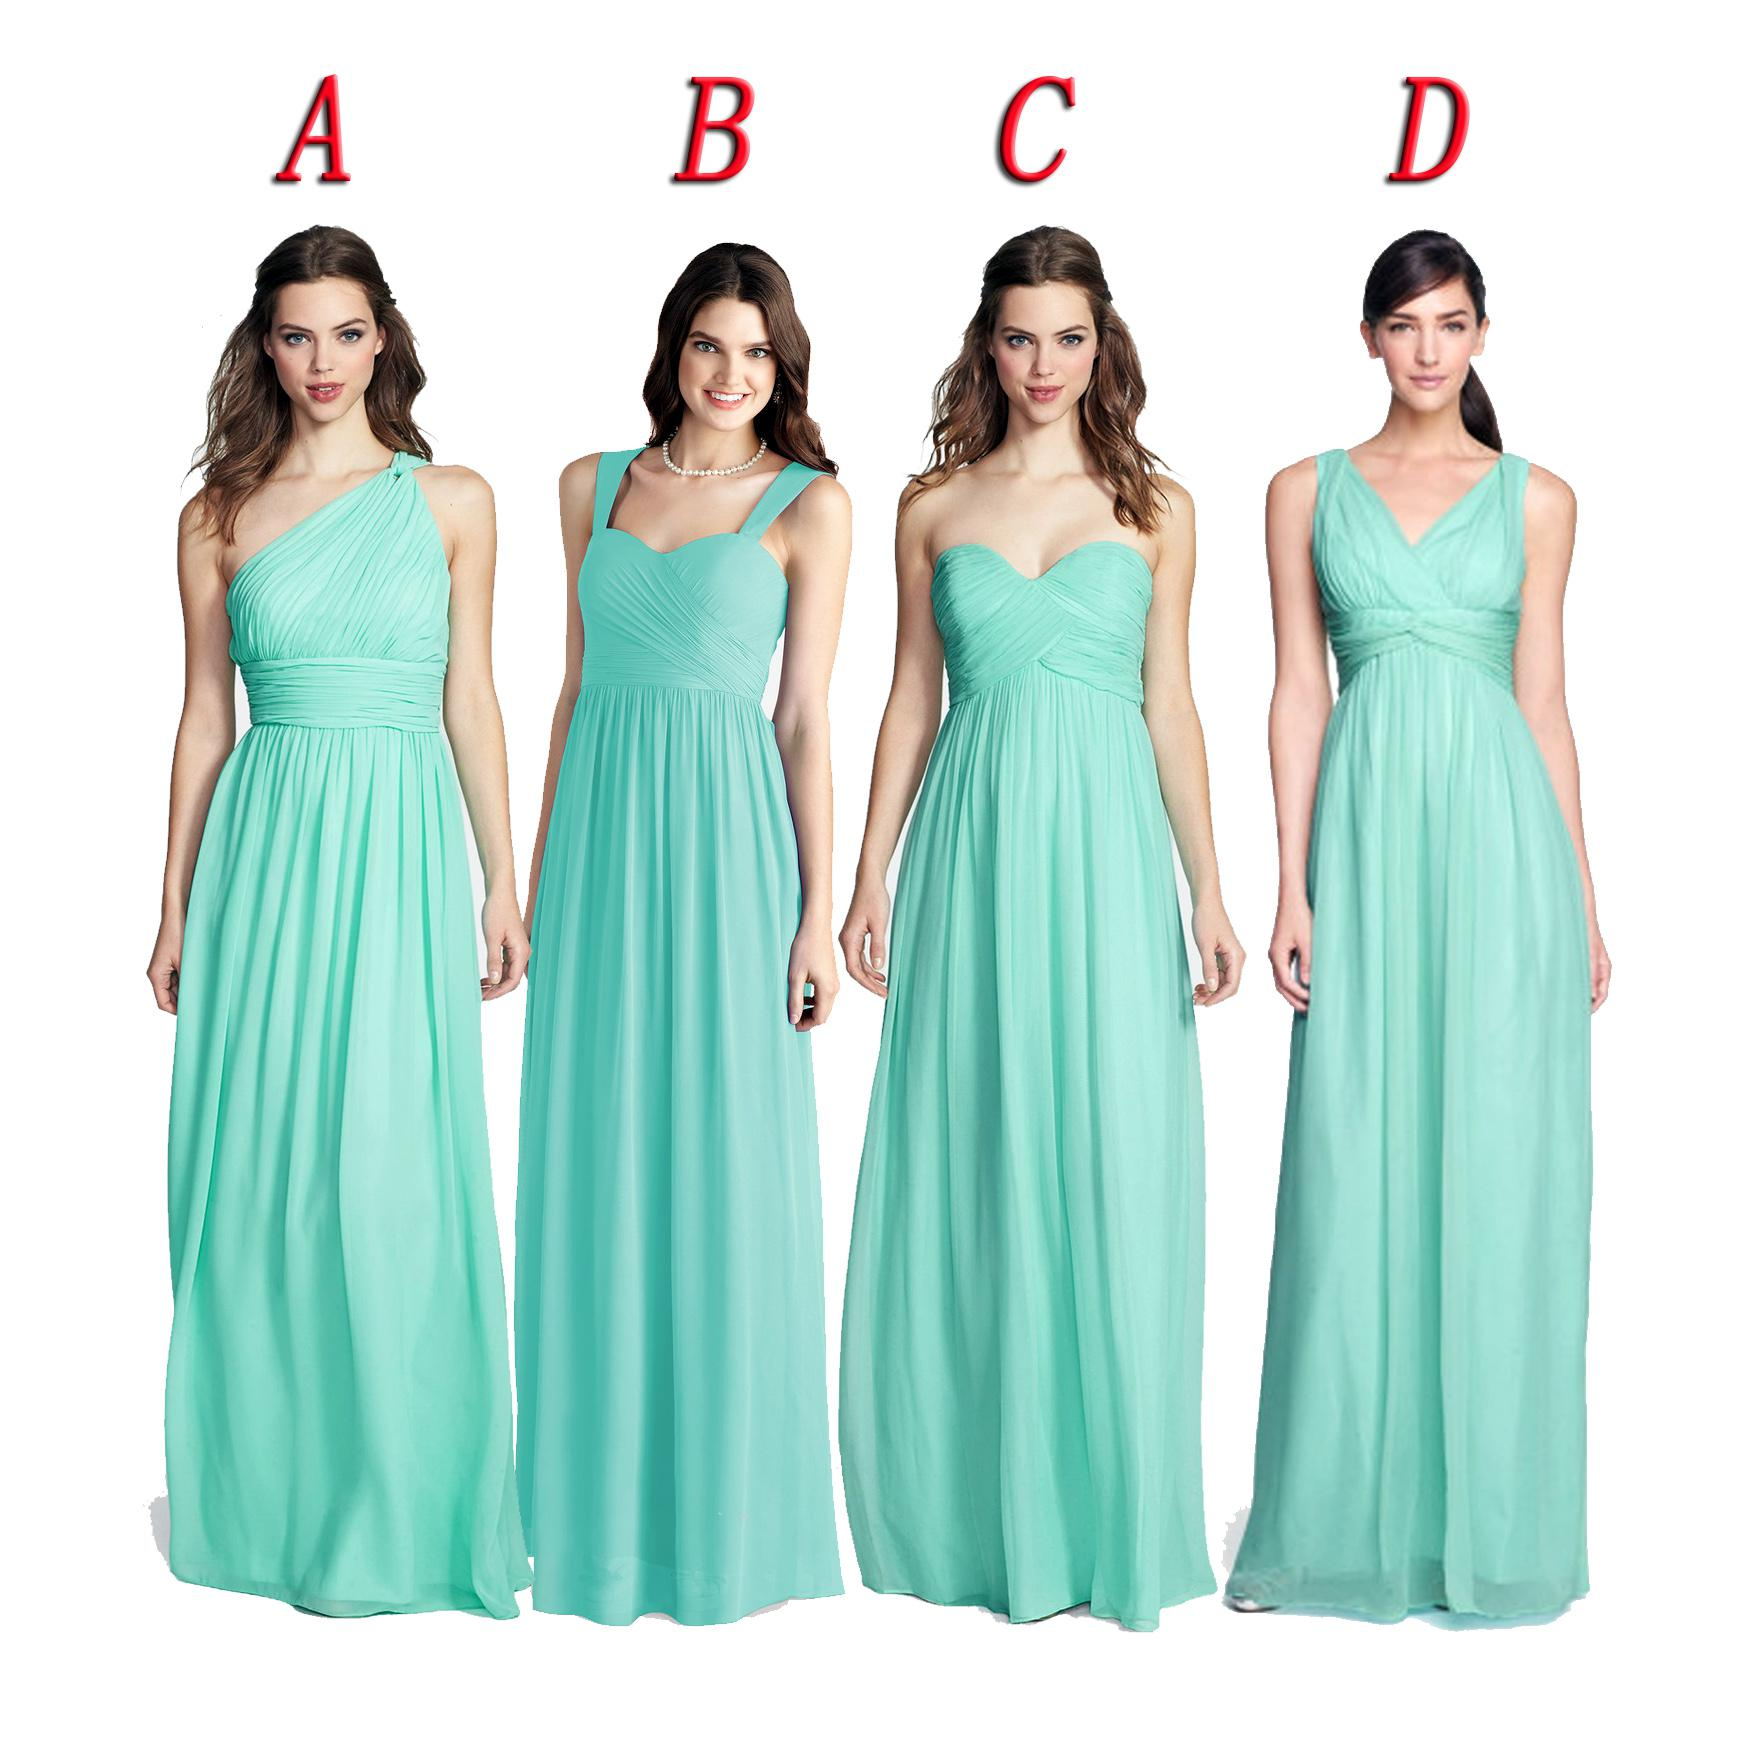 Color different style bridesmaid dresses same color different style bridesmaid dresses ombrellifo Gallery